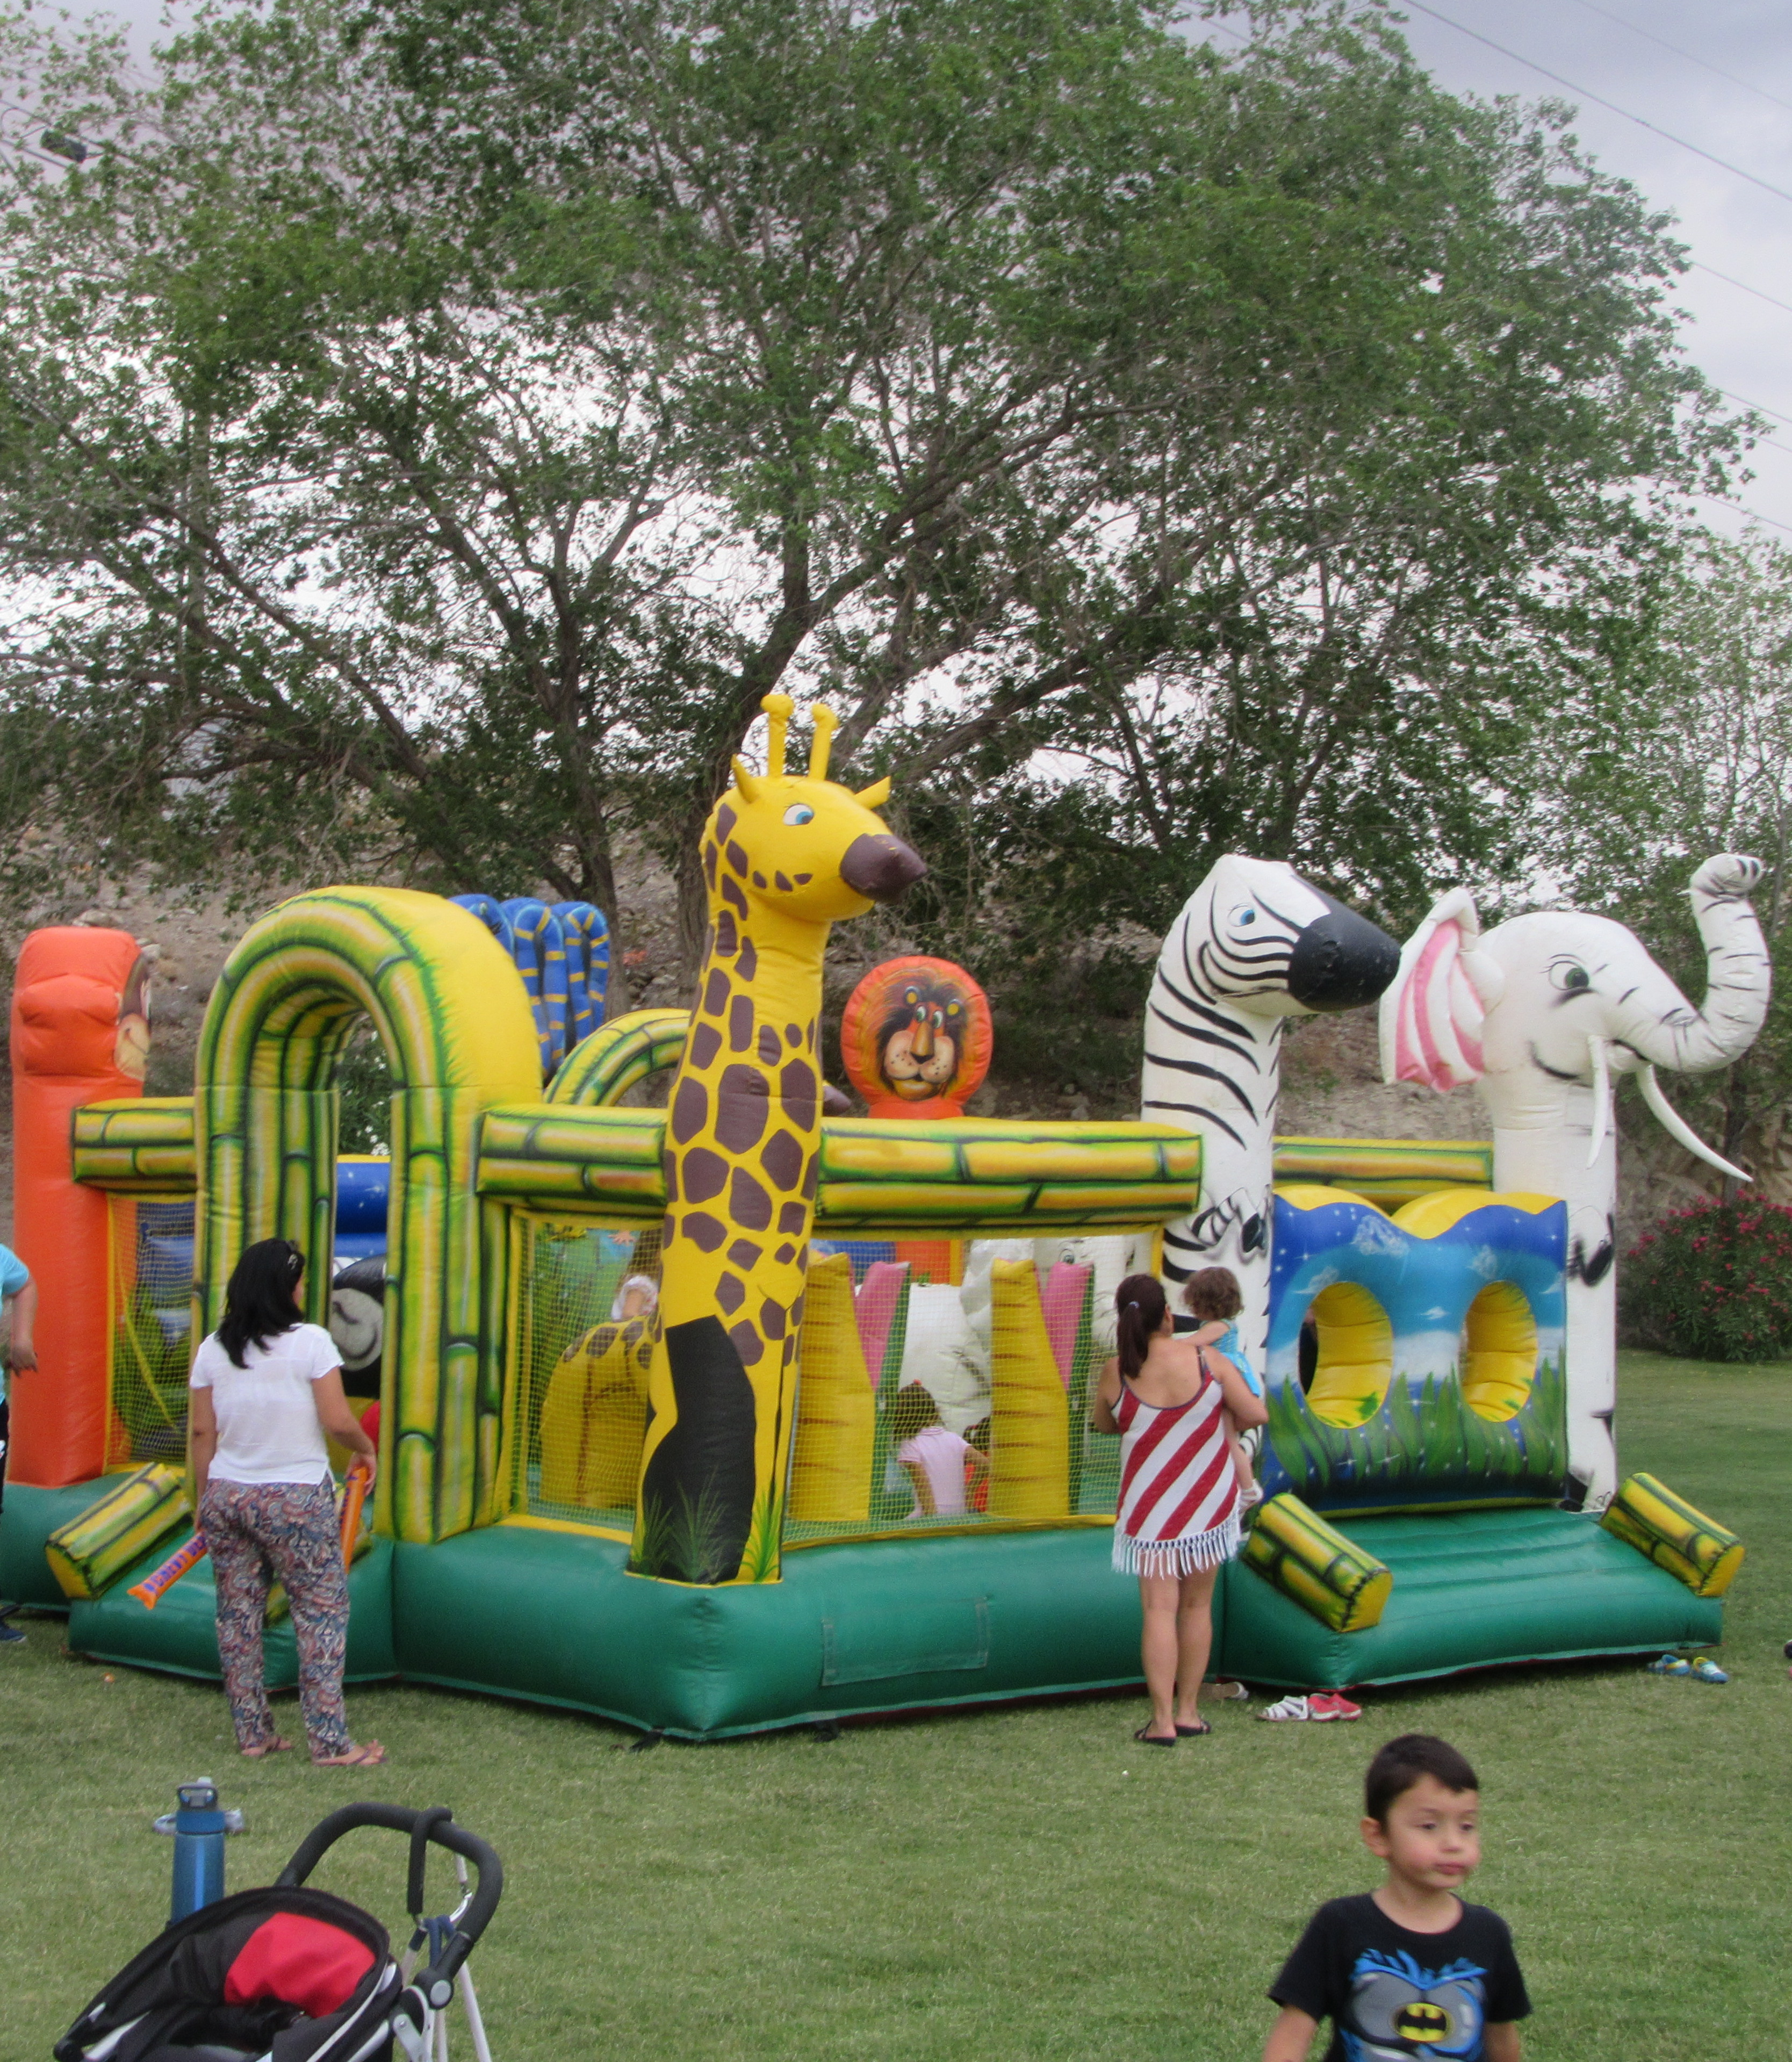 A large bounce house.